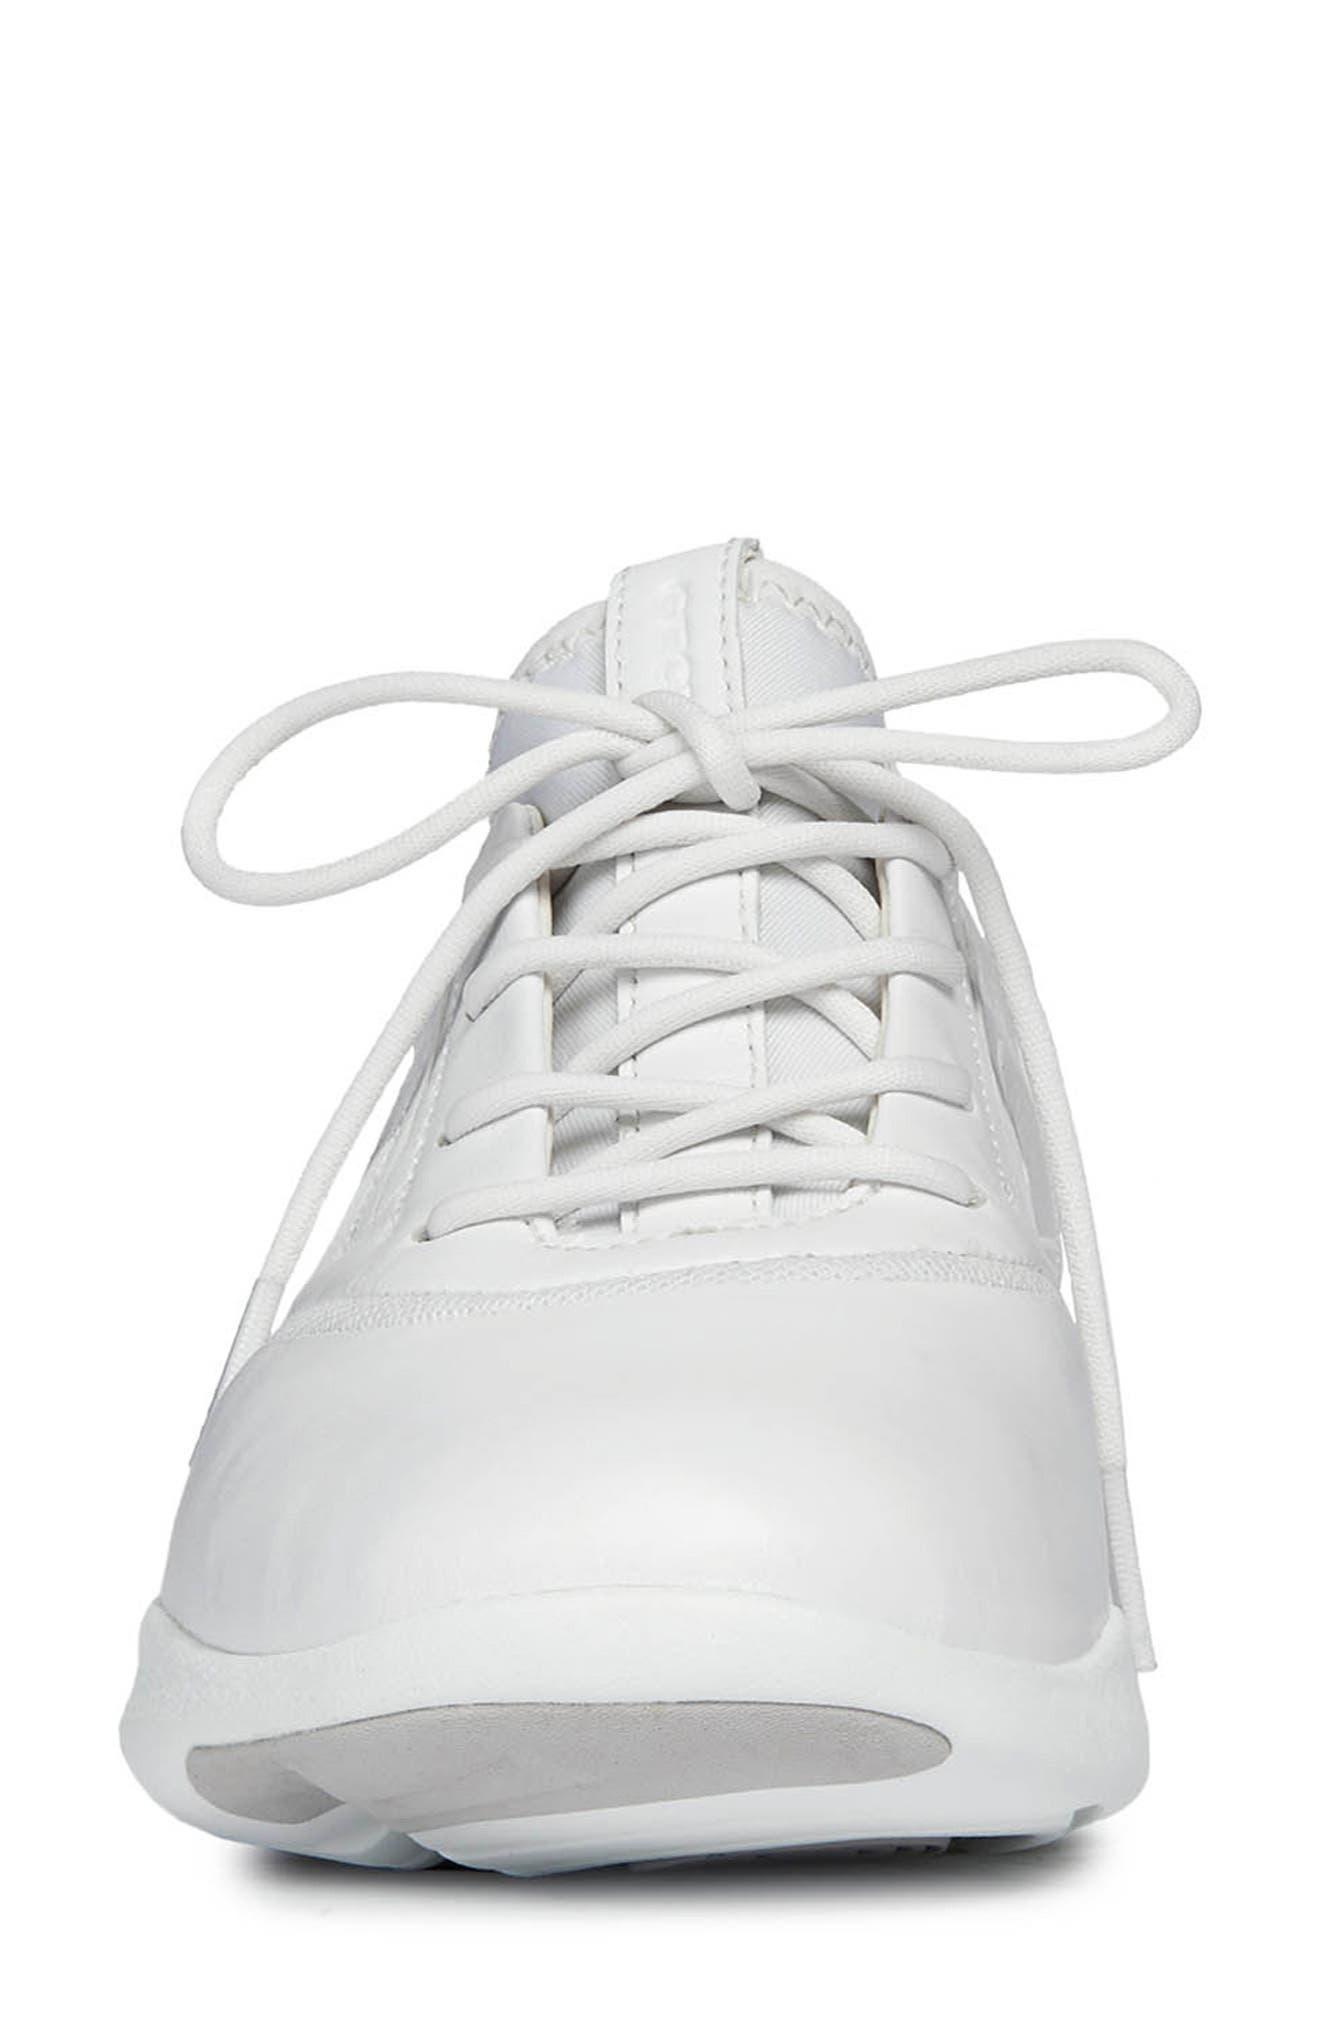 Nebula S 2 Low Top Sneaker,                             Alternate thumbnail 4, color,                             WHITE LEATHER